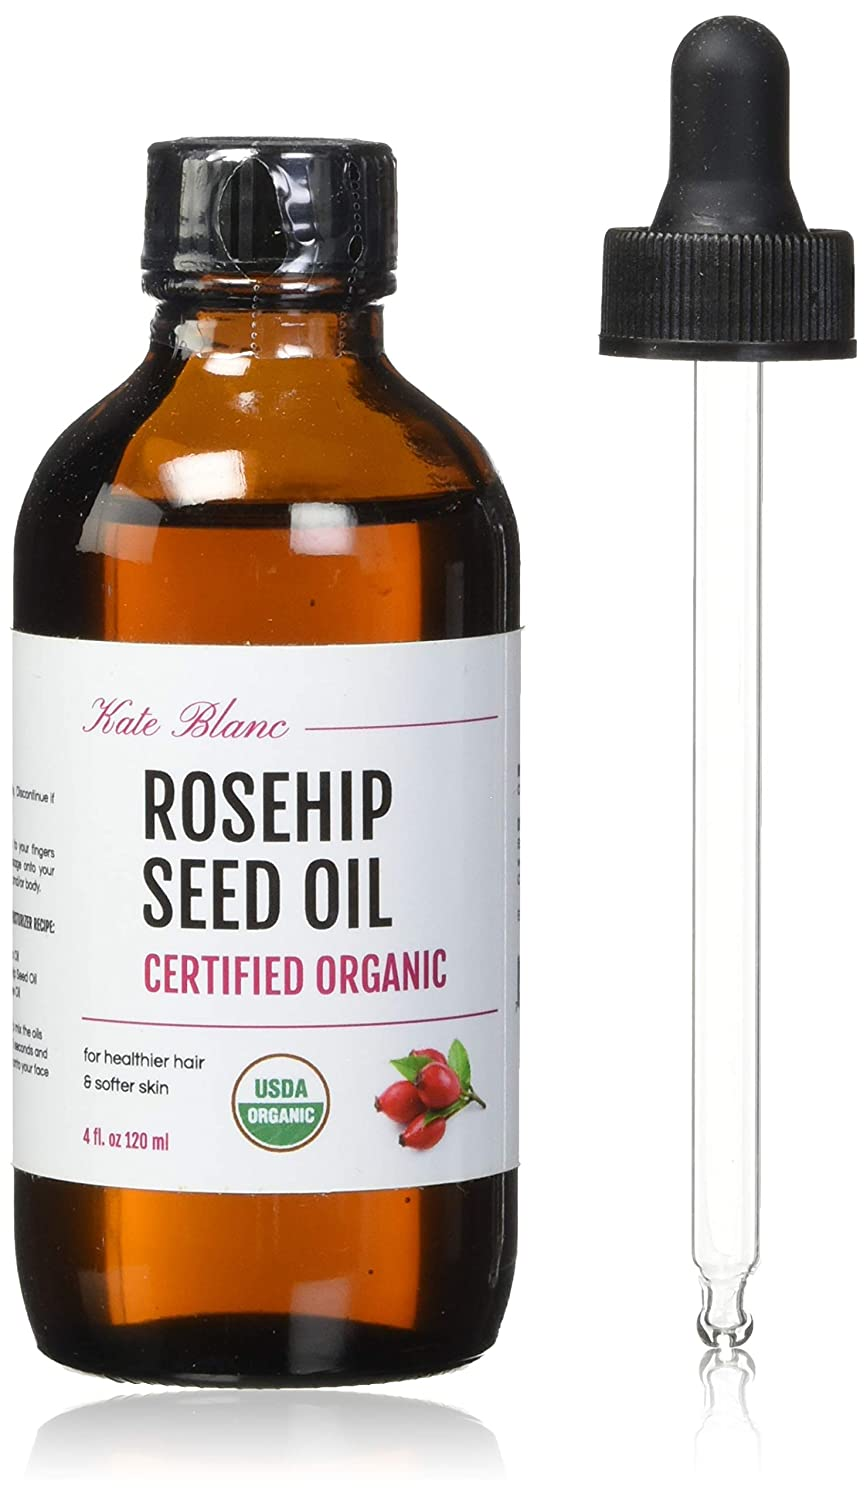 Organic Rosehip Seed Oil (4oz) for Face and Skin by Kate Blanc. USDA Certified, 100% Pure, Cold Pressed. Natural Moisturizer for Acne Scars, Nails, Hair, Skin. Therapeutic AAA+ Grade.: Beauty